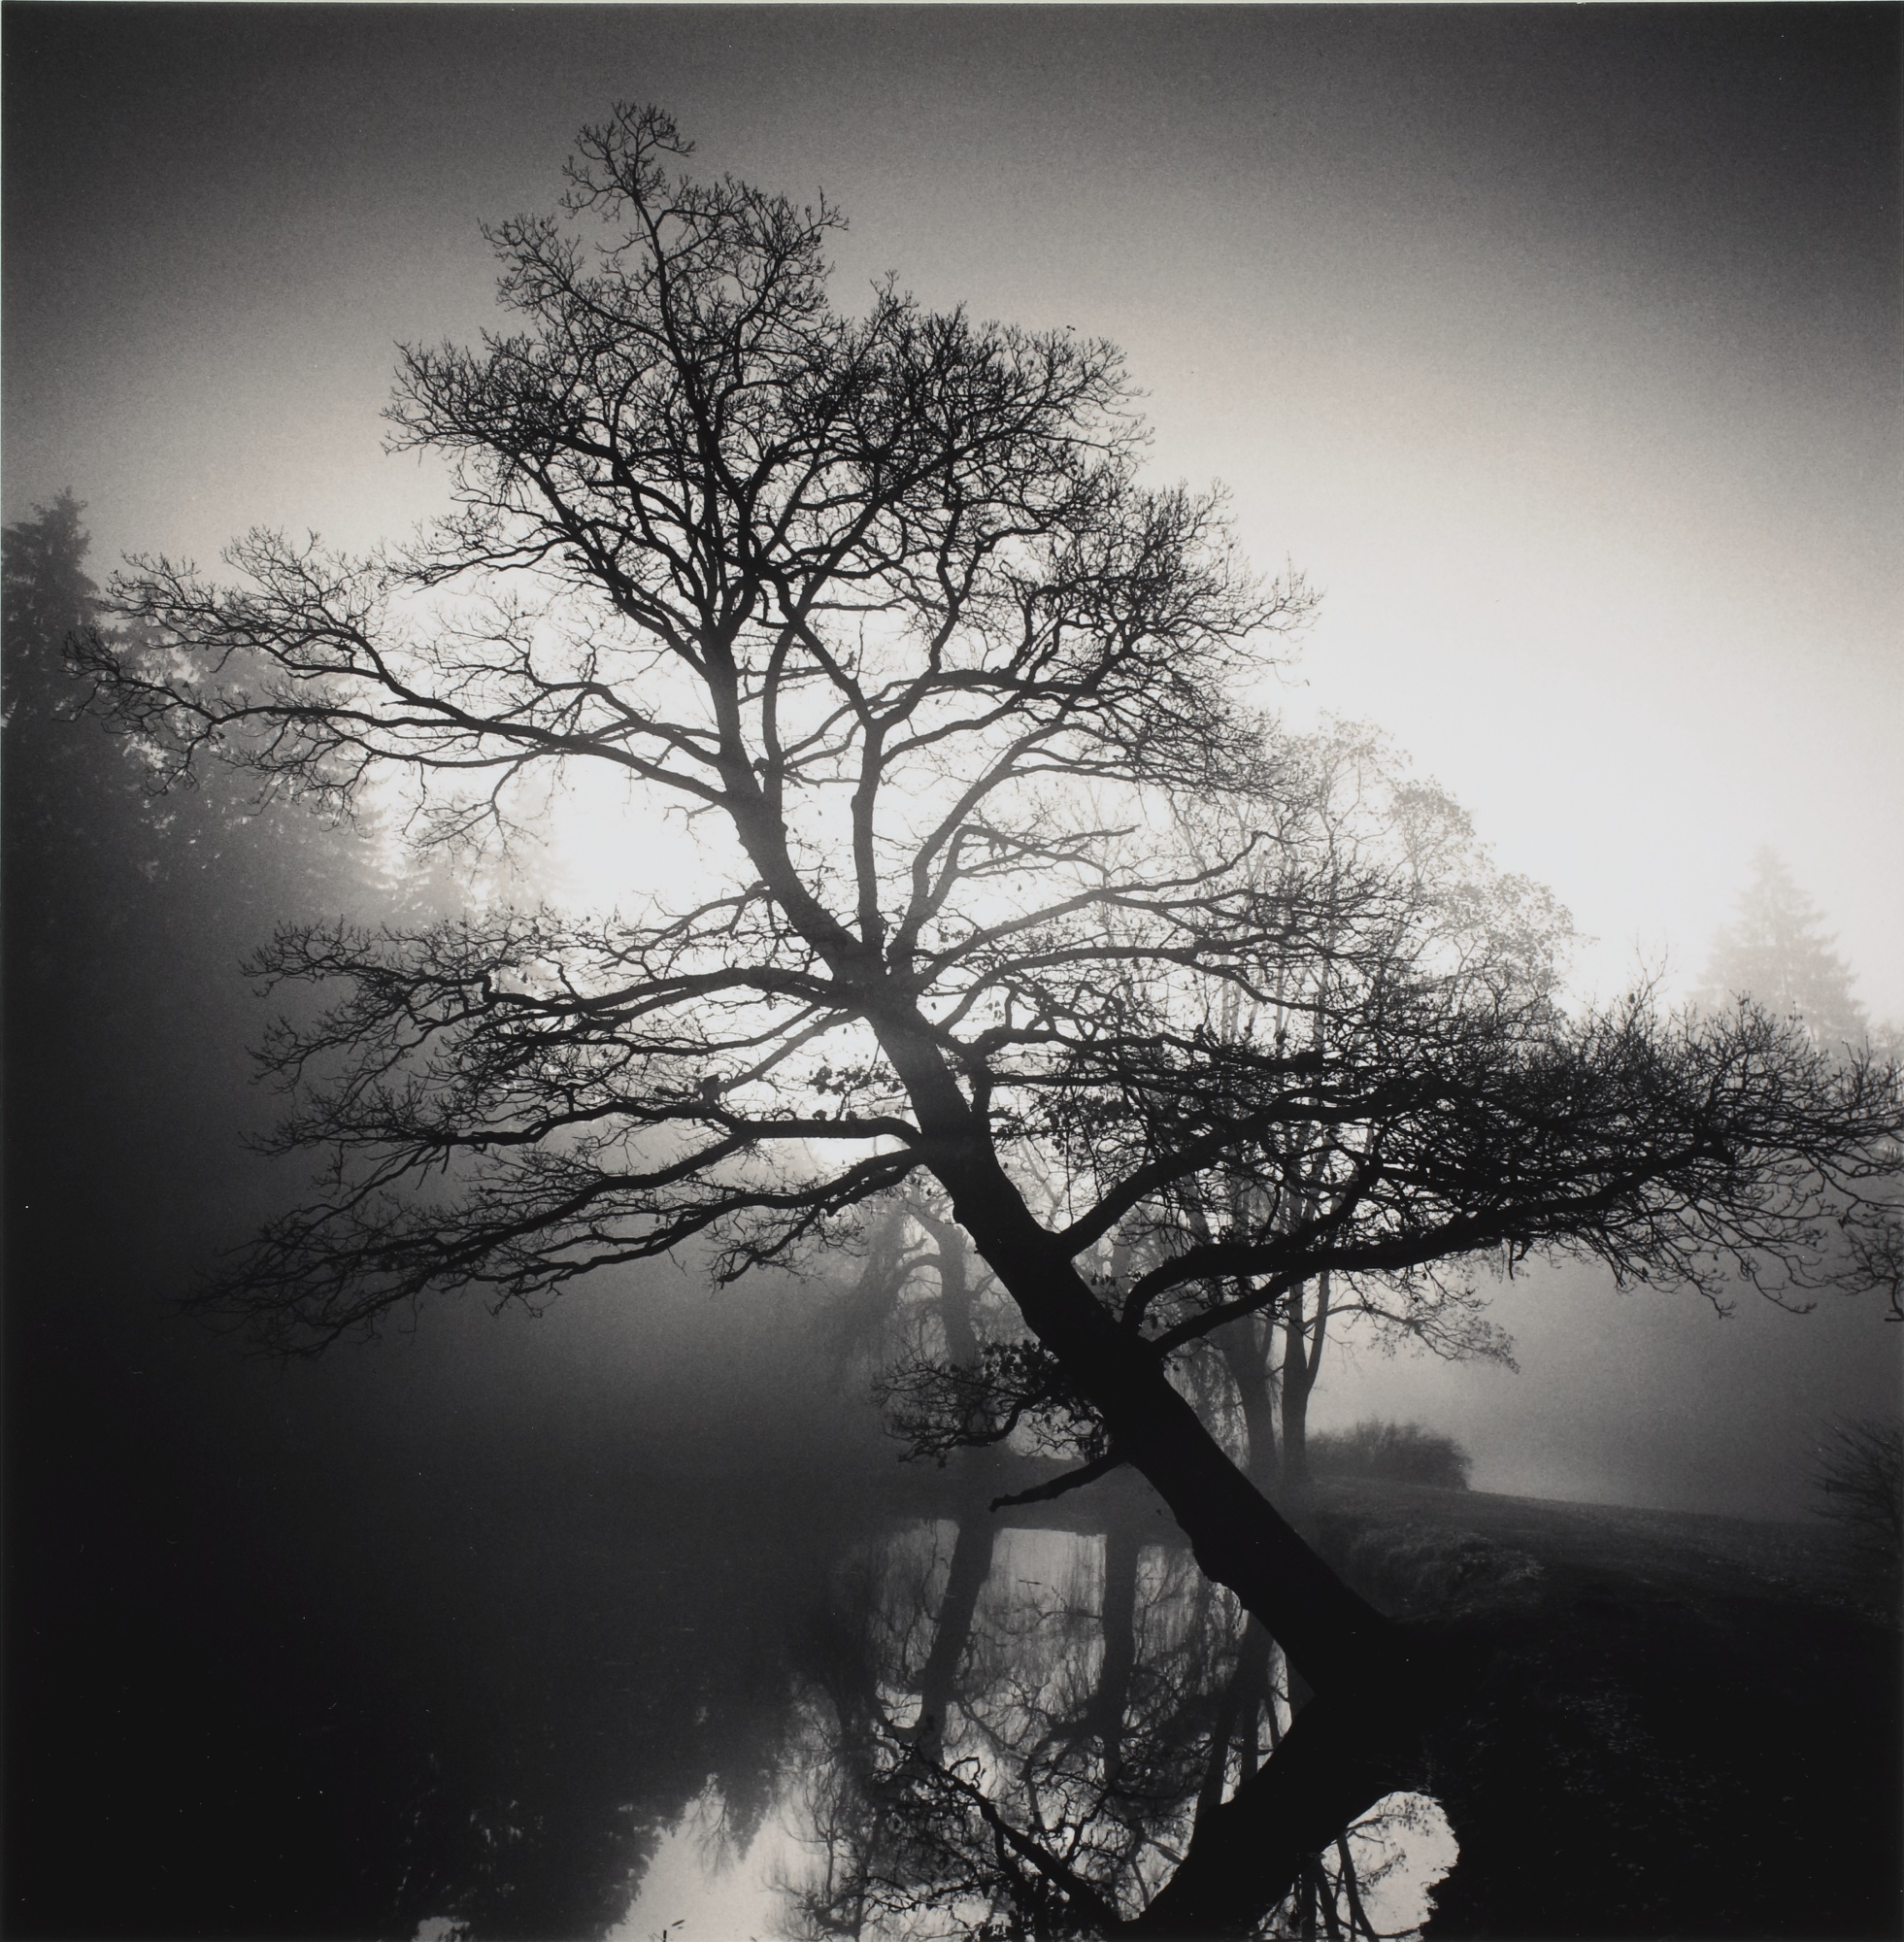 Michael Kenna-Selected Images (Steps, Marin County, California, USA; Reflection, Vaux-le-Vicomte, France; Leaning Tree, Pruhonice, Czechoslovakia; Tempus Fugit, Deerfield Beach, Florida; and Sticks in Water, Lake Shinji, Honshu, Japan)-2001